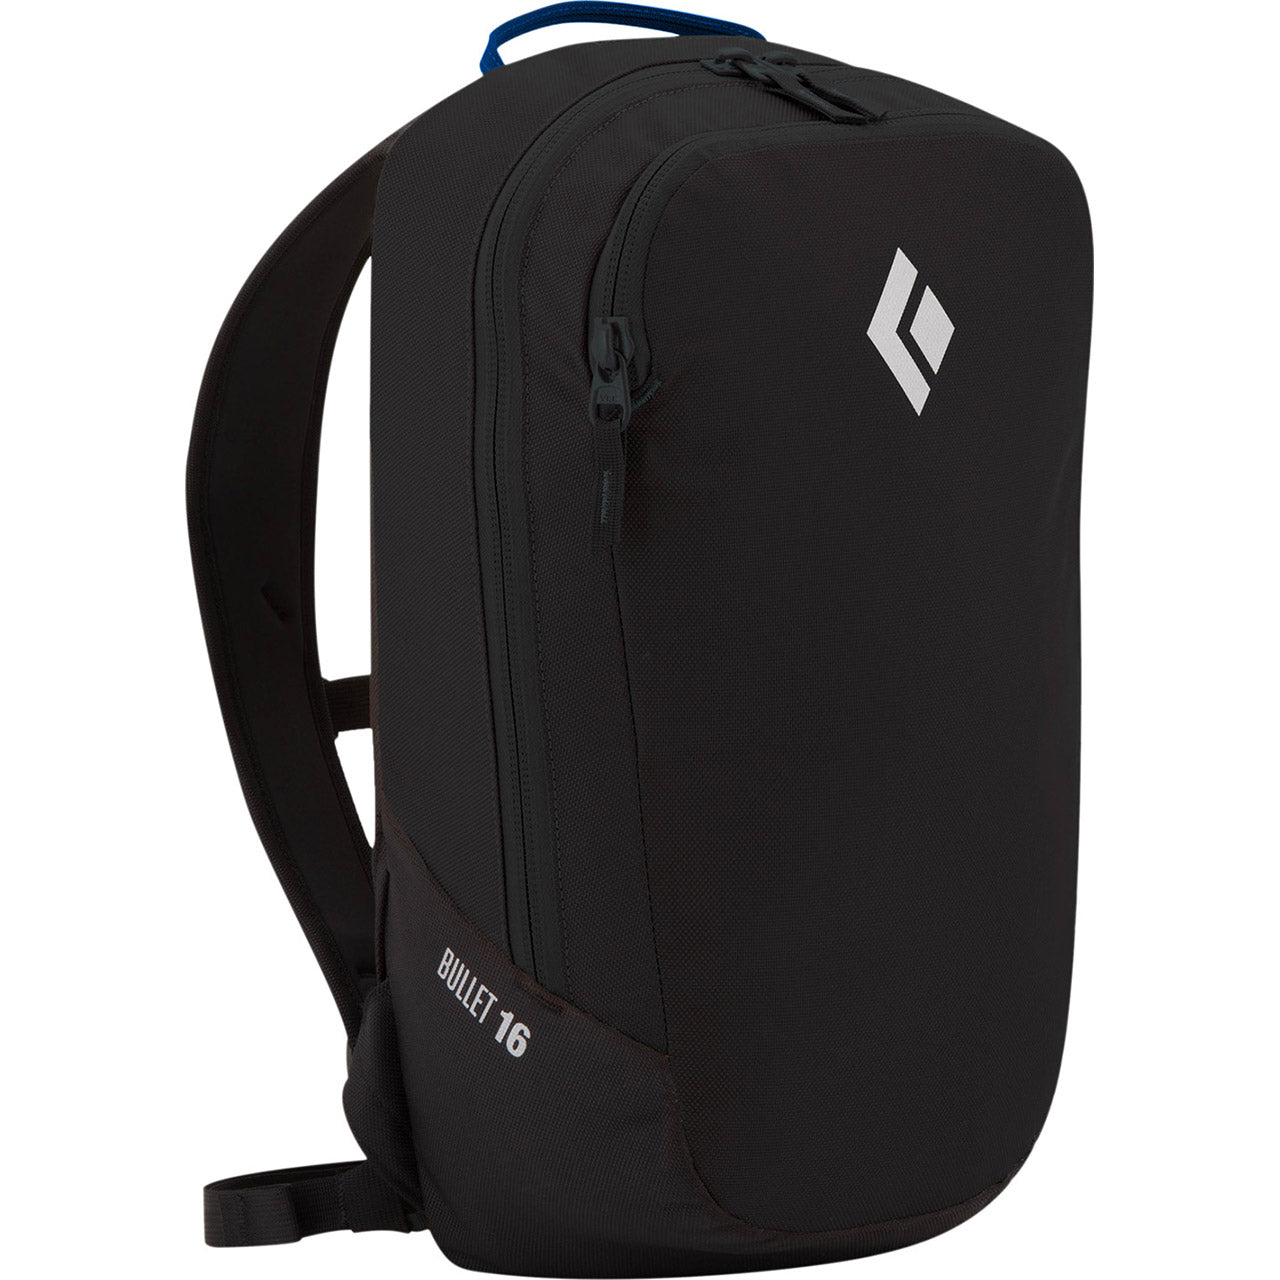 Black Diamond Bullet 16 Mountaineering Pack Black Front